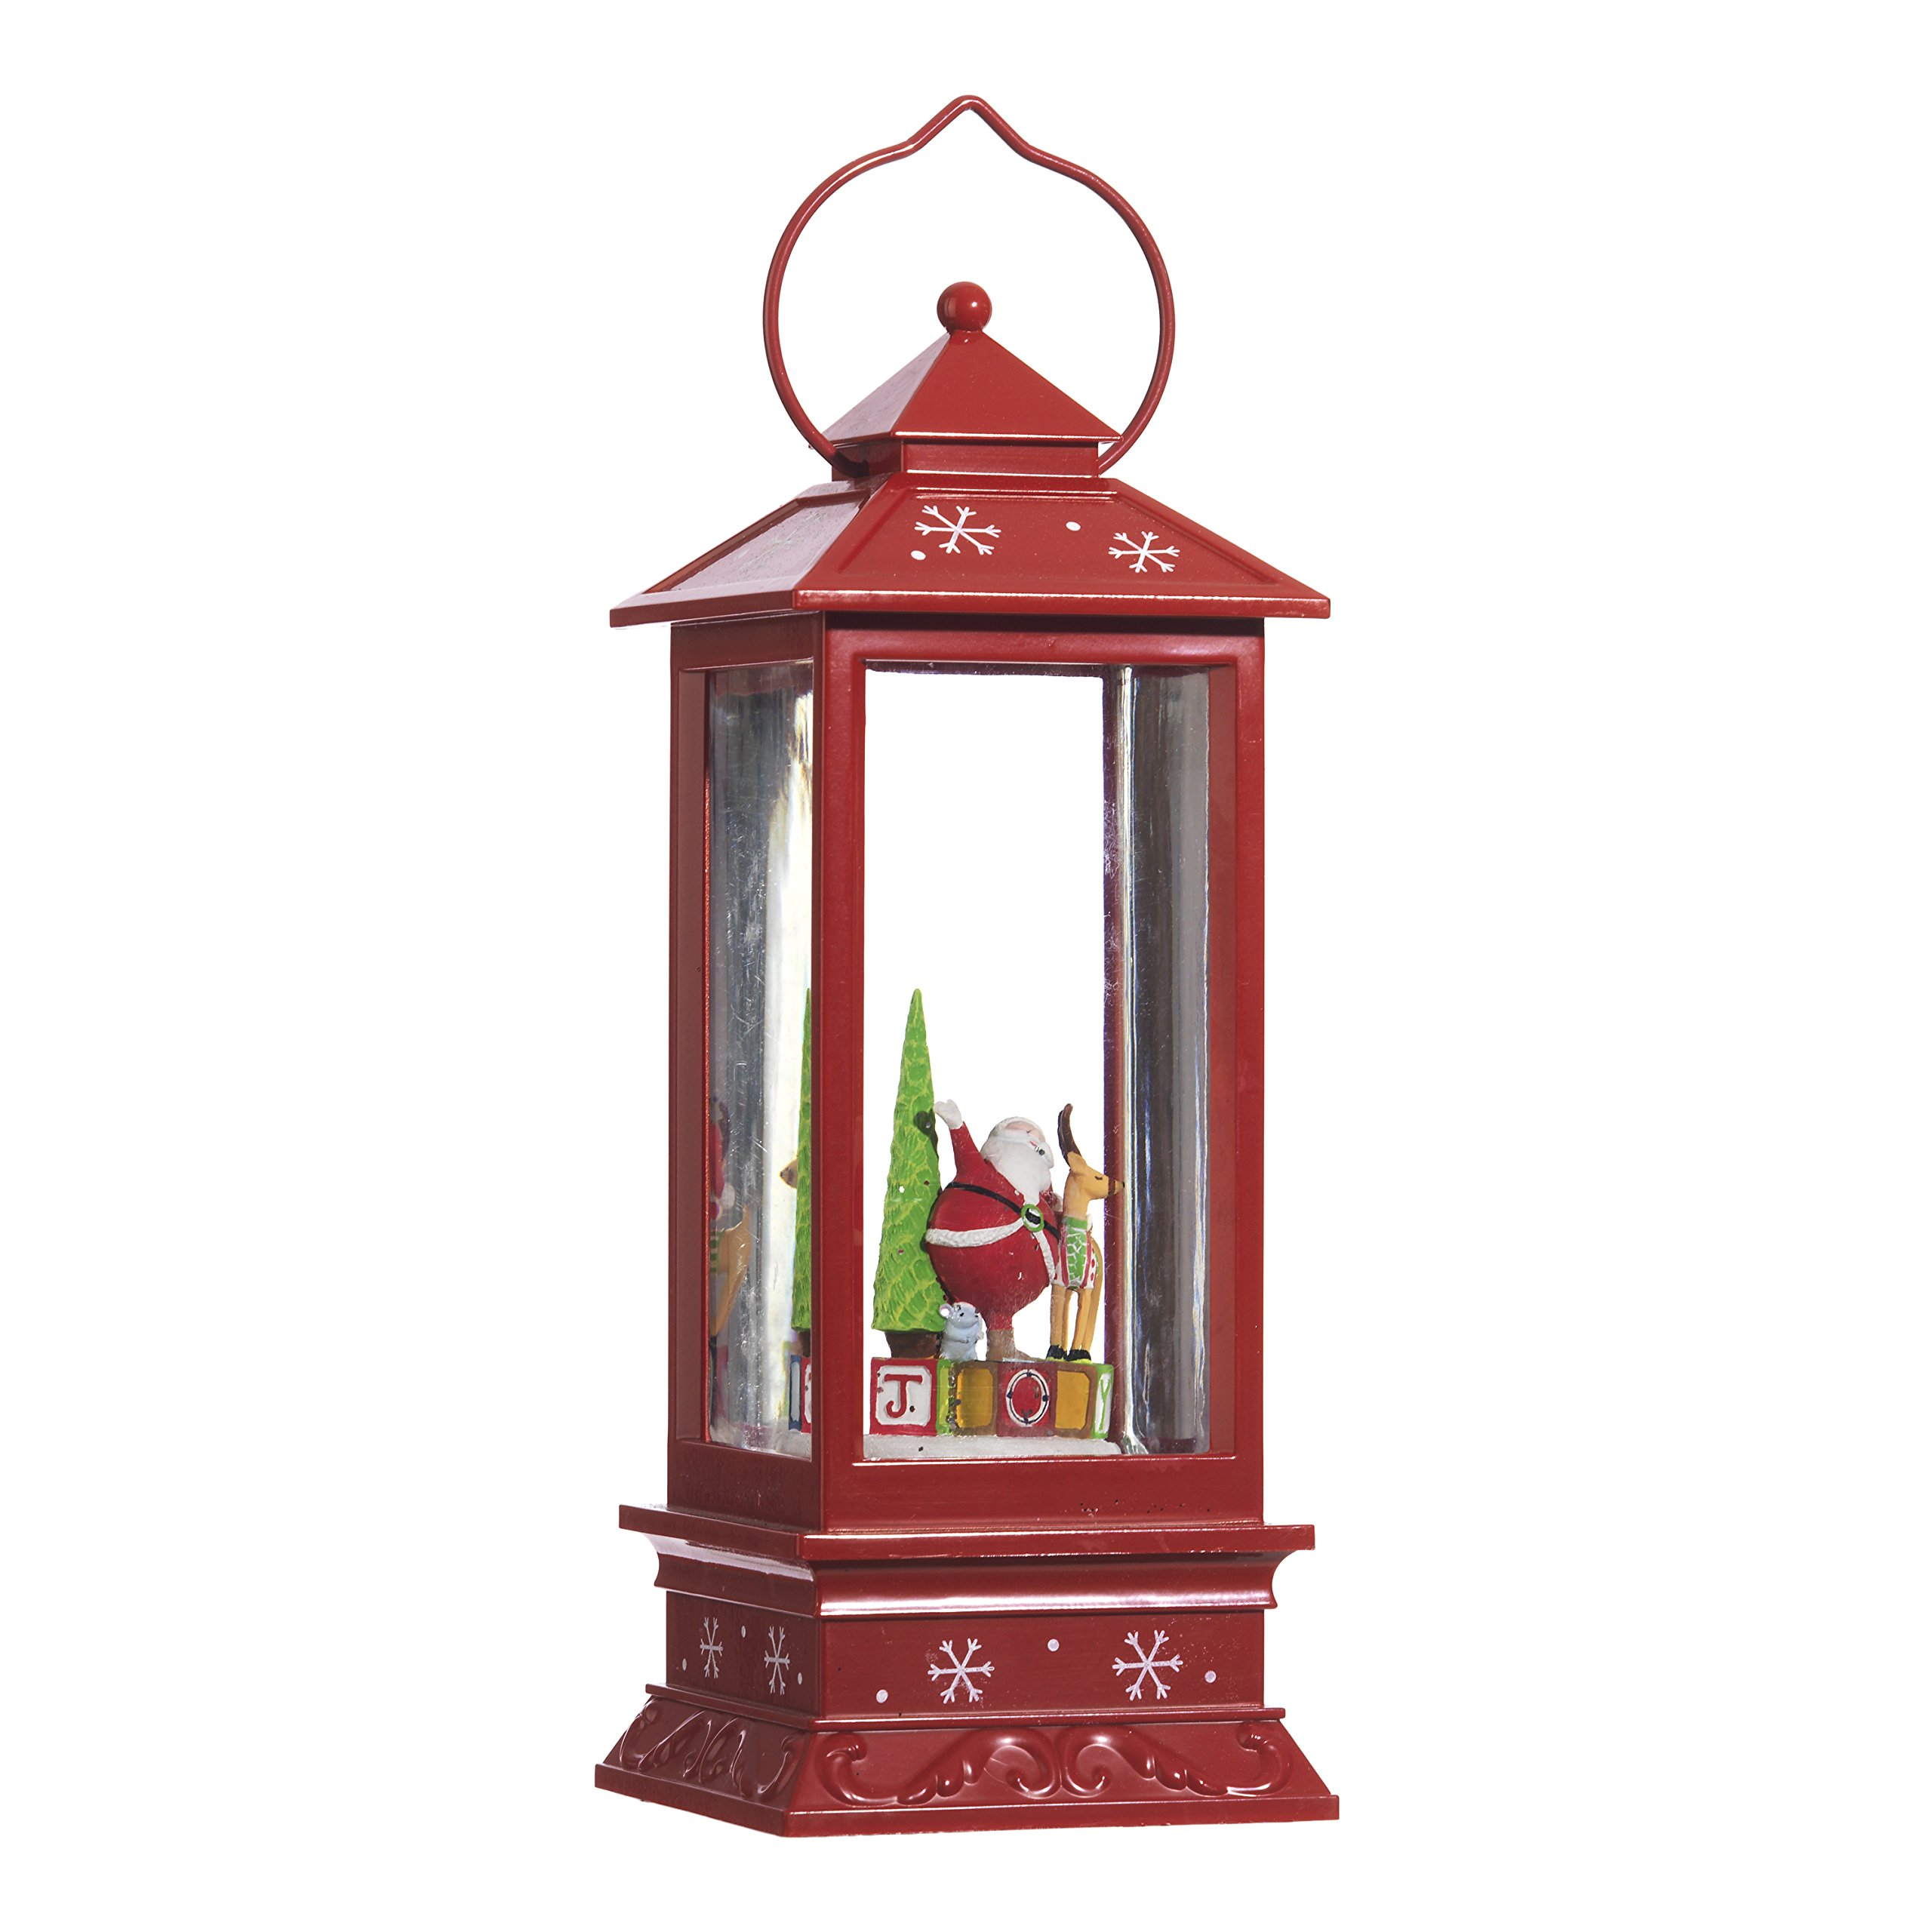 Lighted Snow Globe Lantern: 11 Inch, Red Holiday Water Lantern by RAZ Imports (Santa Claus and Reindeer)